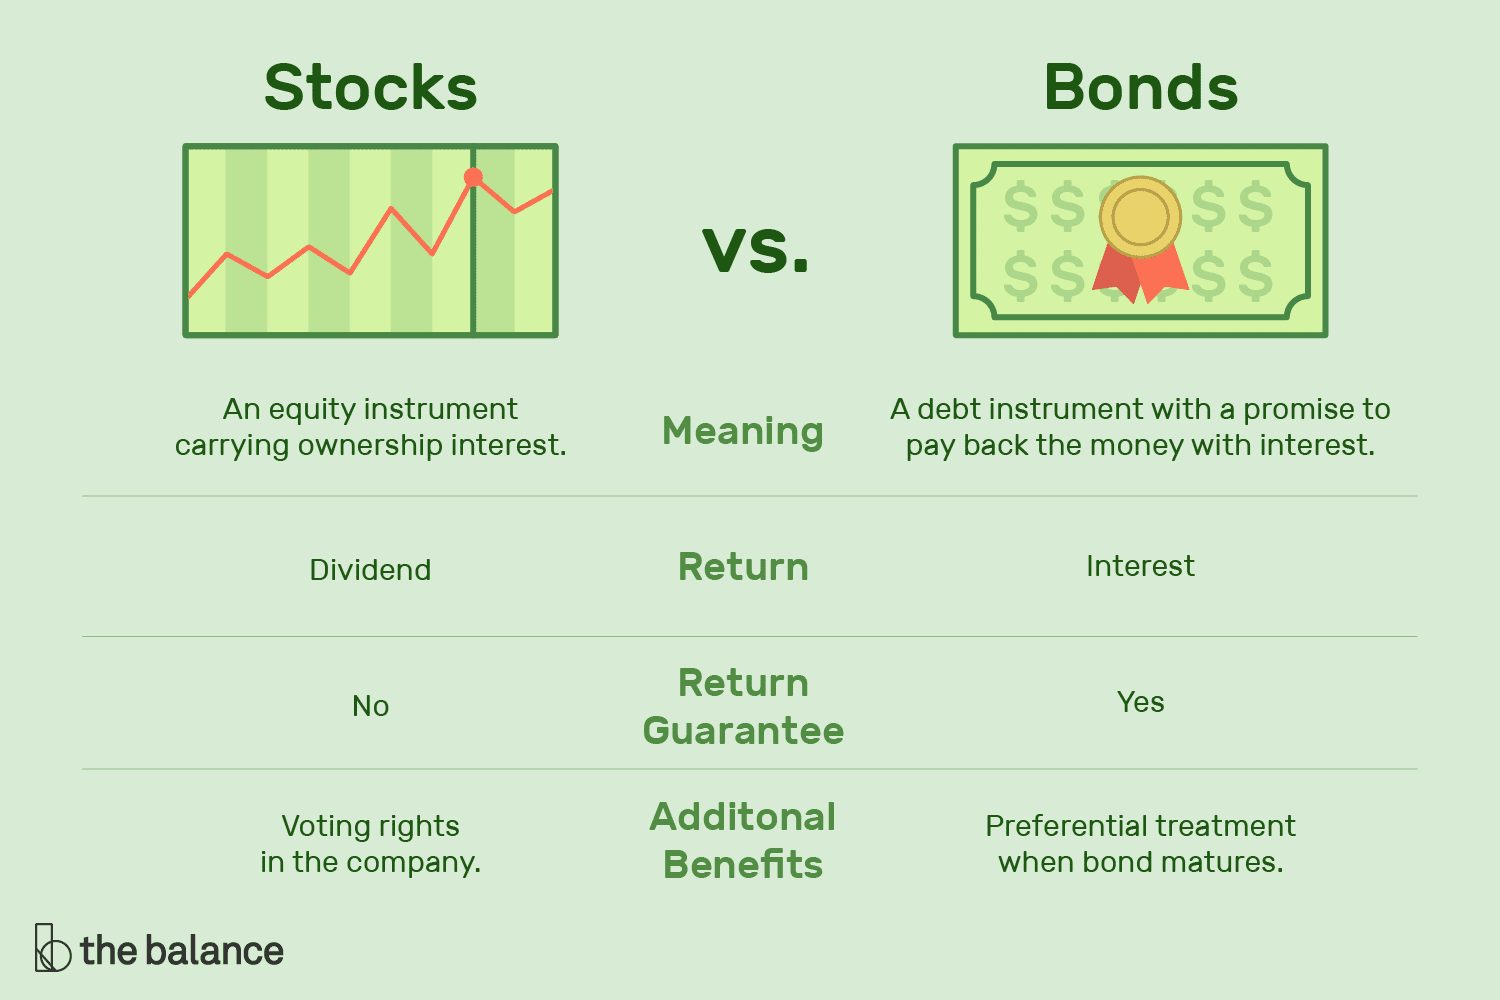 Differences And Definitions Of Stocks And Bonds